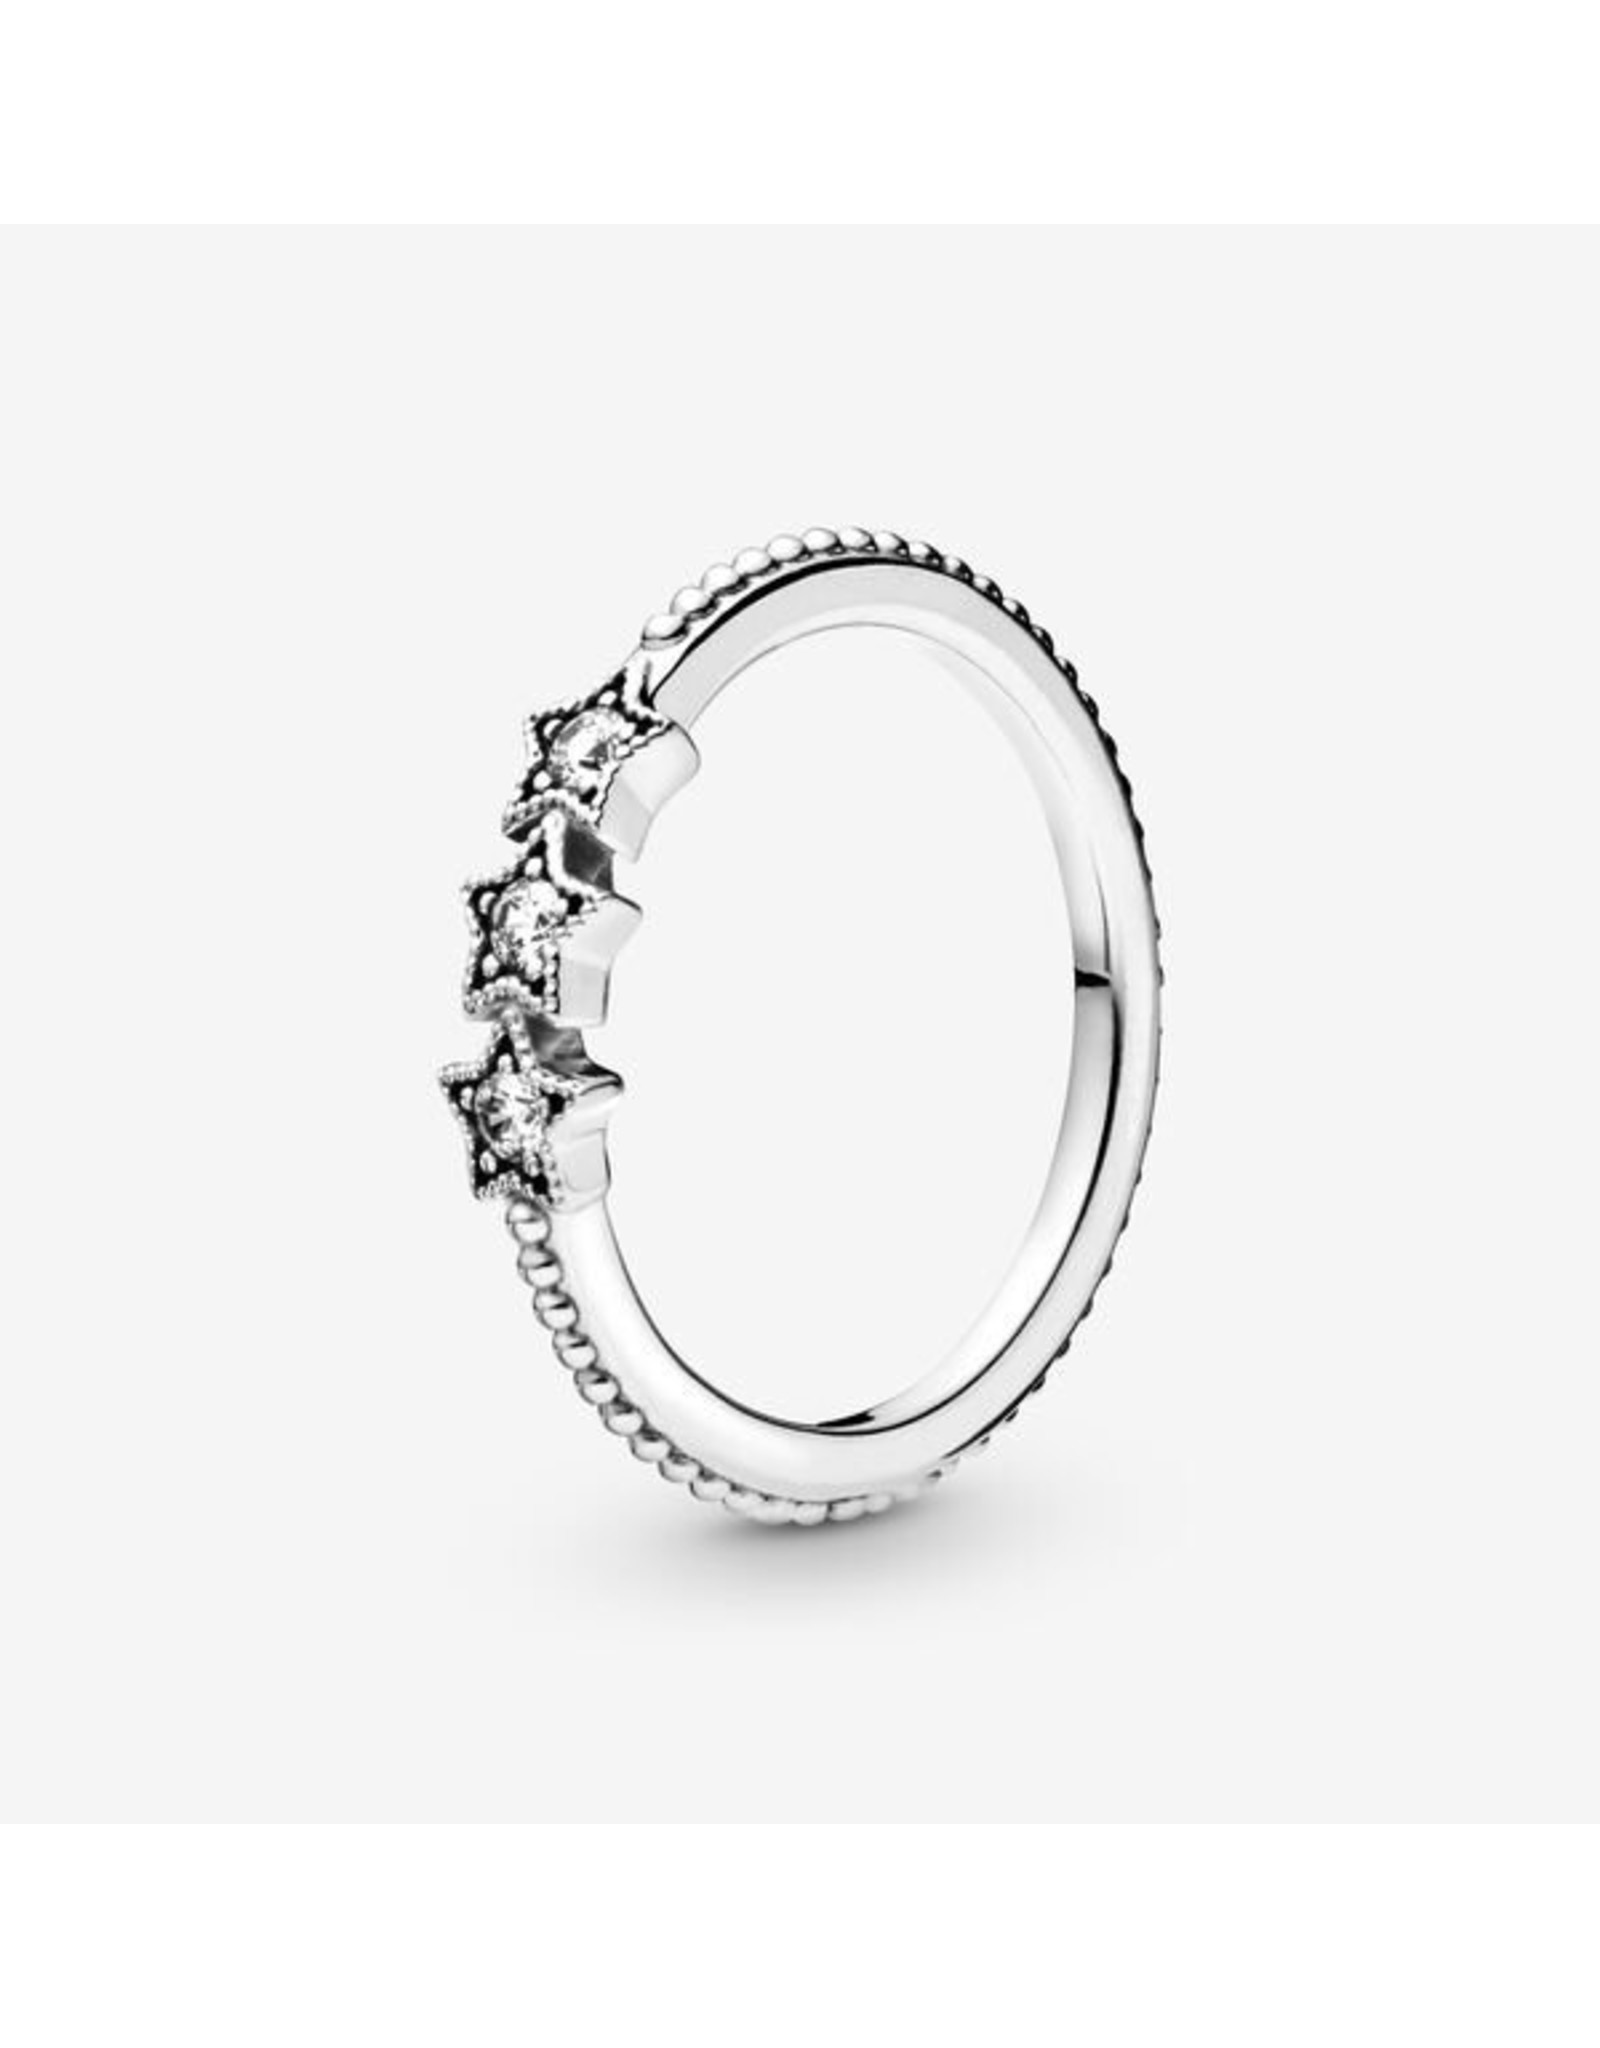 Pandora Pandora Ring, (198492CO1) Celestial Stars, Clear CZ